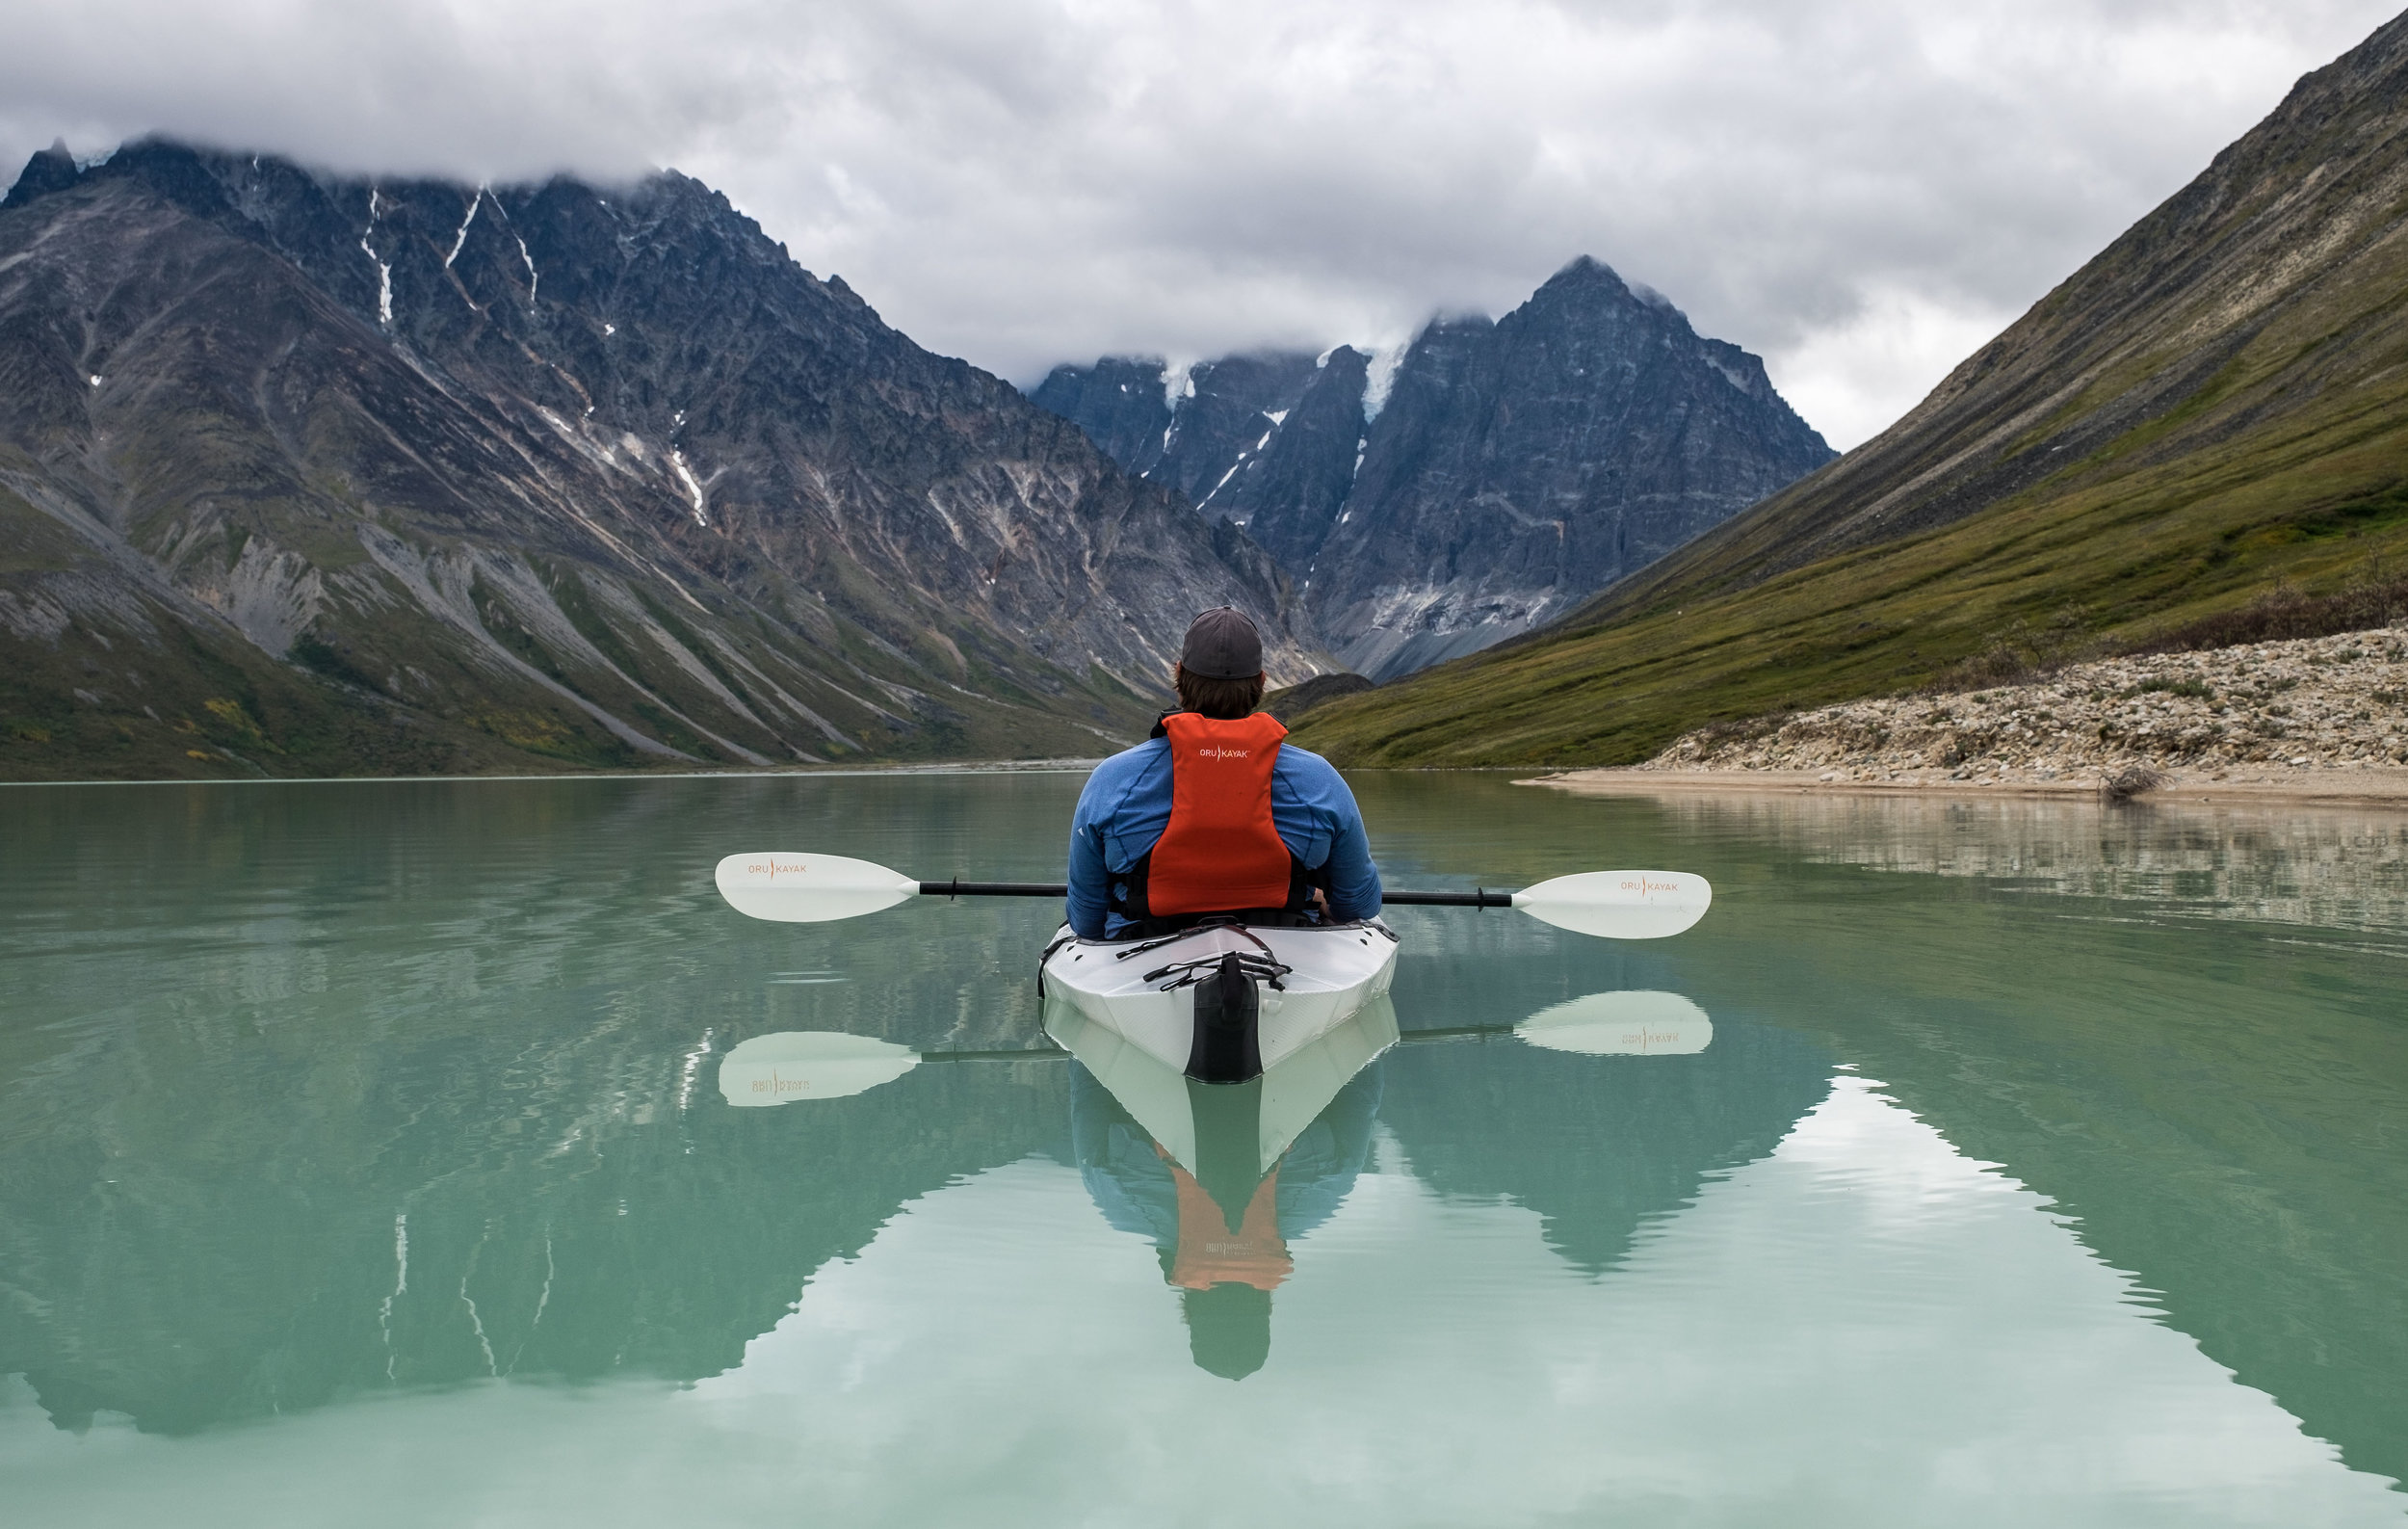 Jonathan paddles off onto Turquoise Lake in his Oru origami kayak in Lake Clark's backcountry.